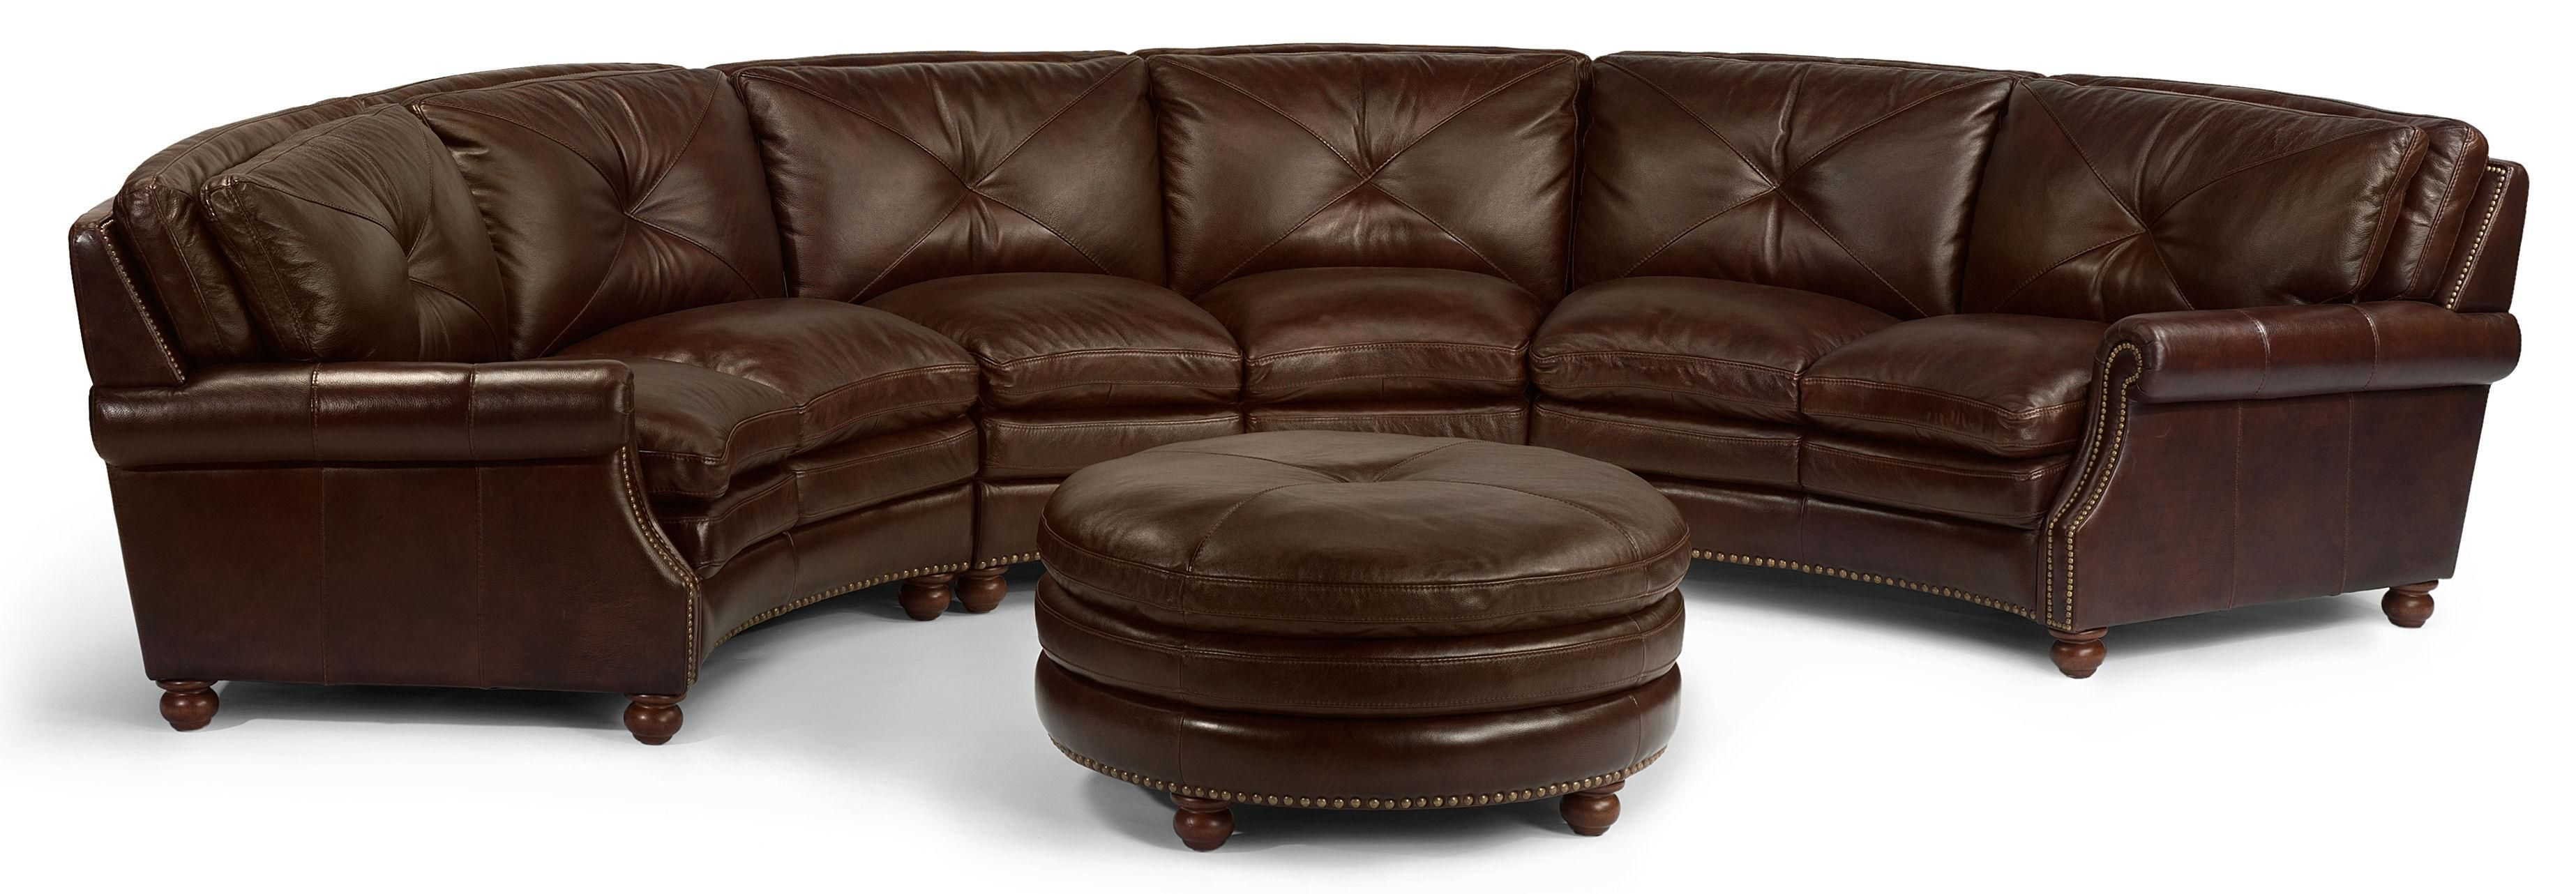 terrific contemporary sofa bed image-Lovely Contemporary sofa Bed Picture